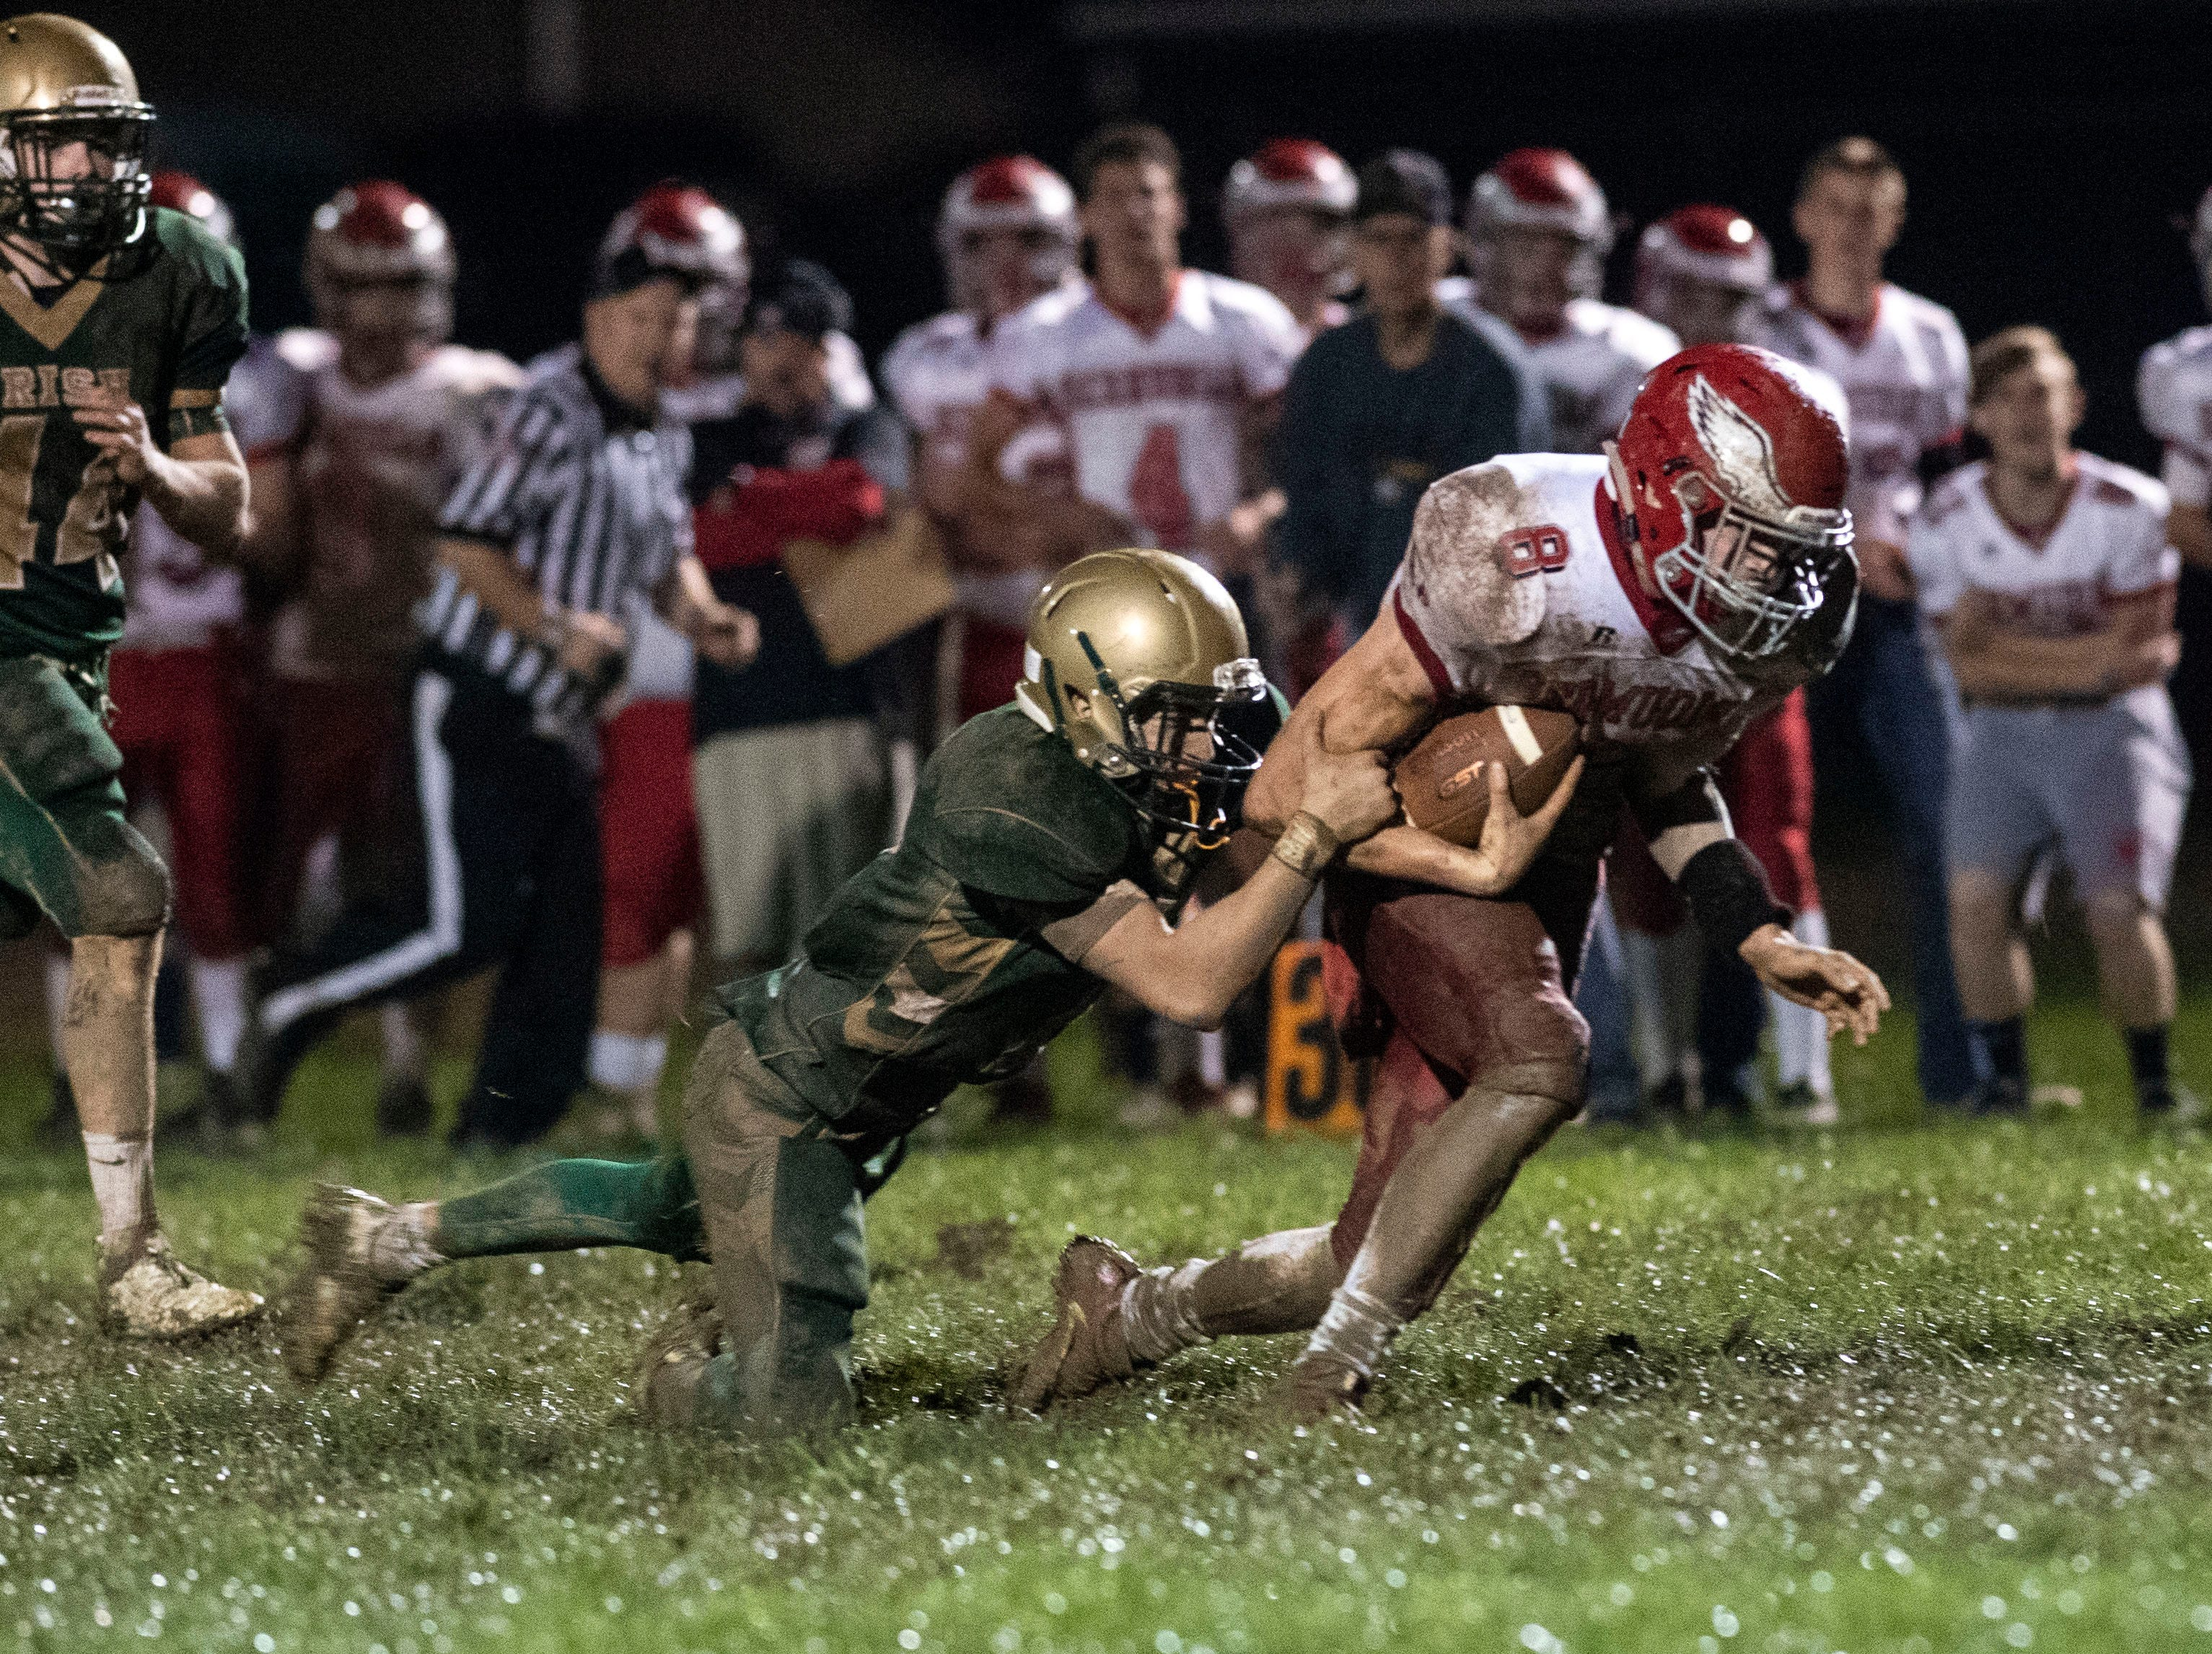 Bermudian Springs' Chase McMillan (8) gets taken down while fighting for yardage during a Division III football game on September 28, 2018. York Catholic (6-0) beat the Bermudian Springs Eagles (4-2) 10-7, during the Fighting Irish's homecoming.